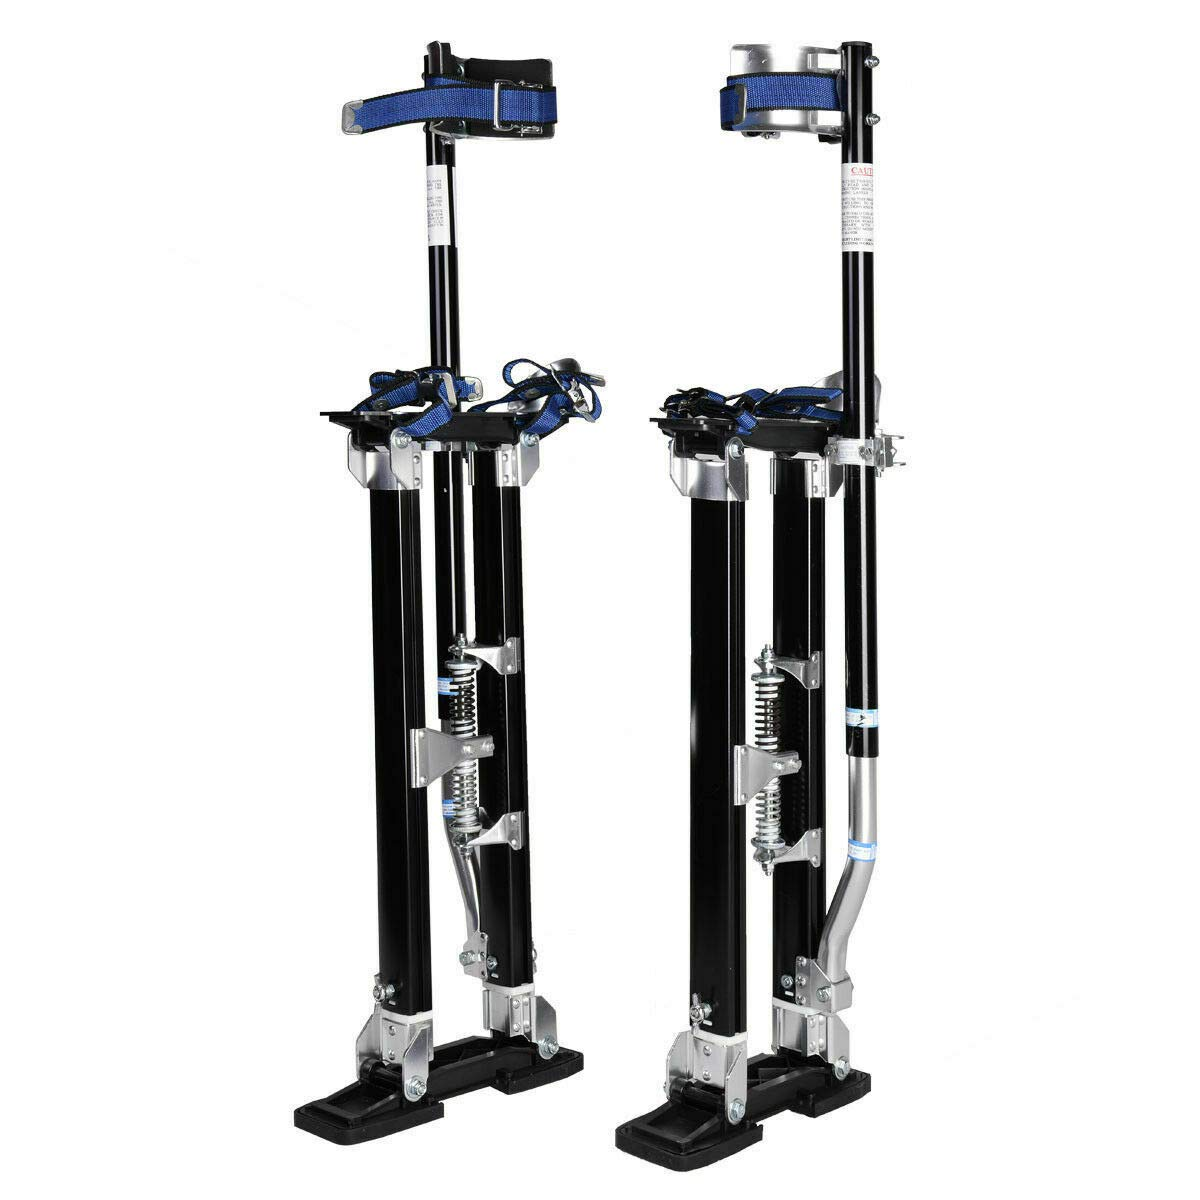 NanaPluz Aluminum Height Adjustable 24''-40'' Painter Taping Drywall Stilts Painting Tool Ergonomics Design - Black with Ebook by NanaPluz